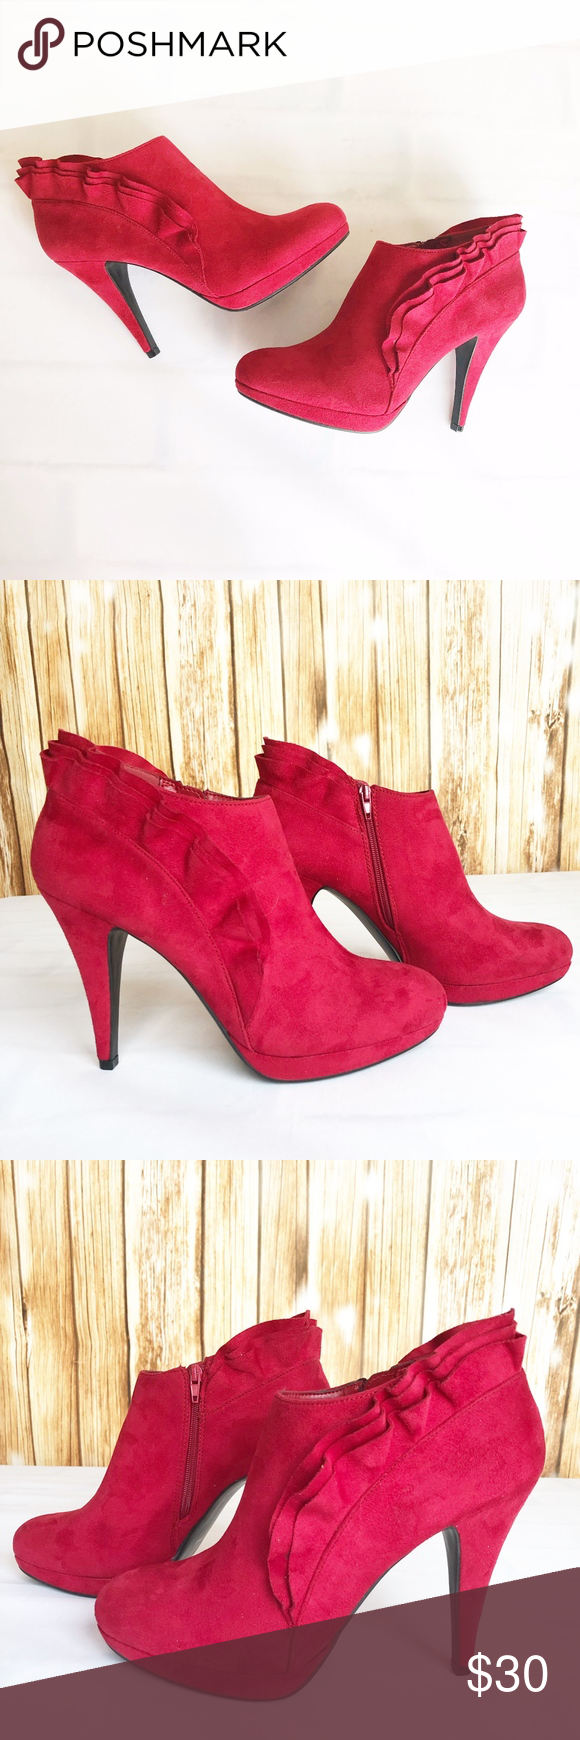 37b7505be1b98 Impo Priscilla Booties Ankle Boots Red Womens 8.5 Impo